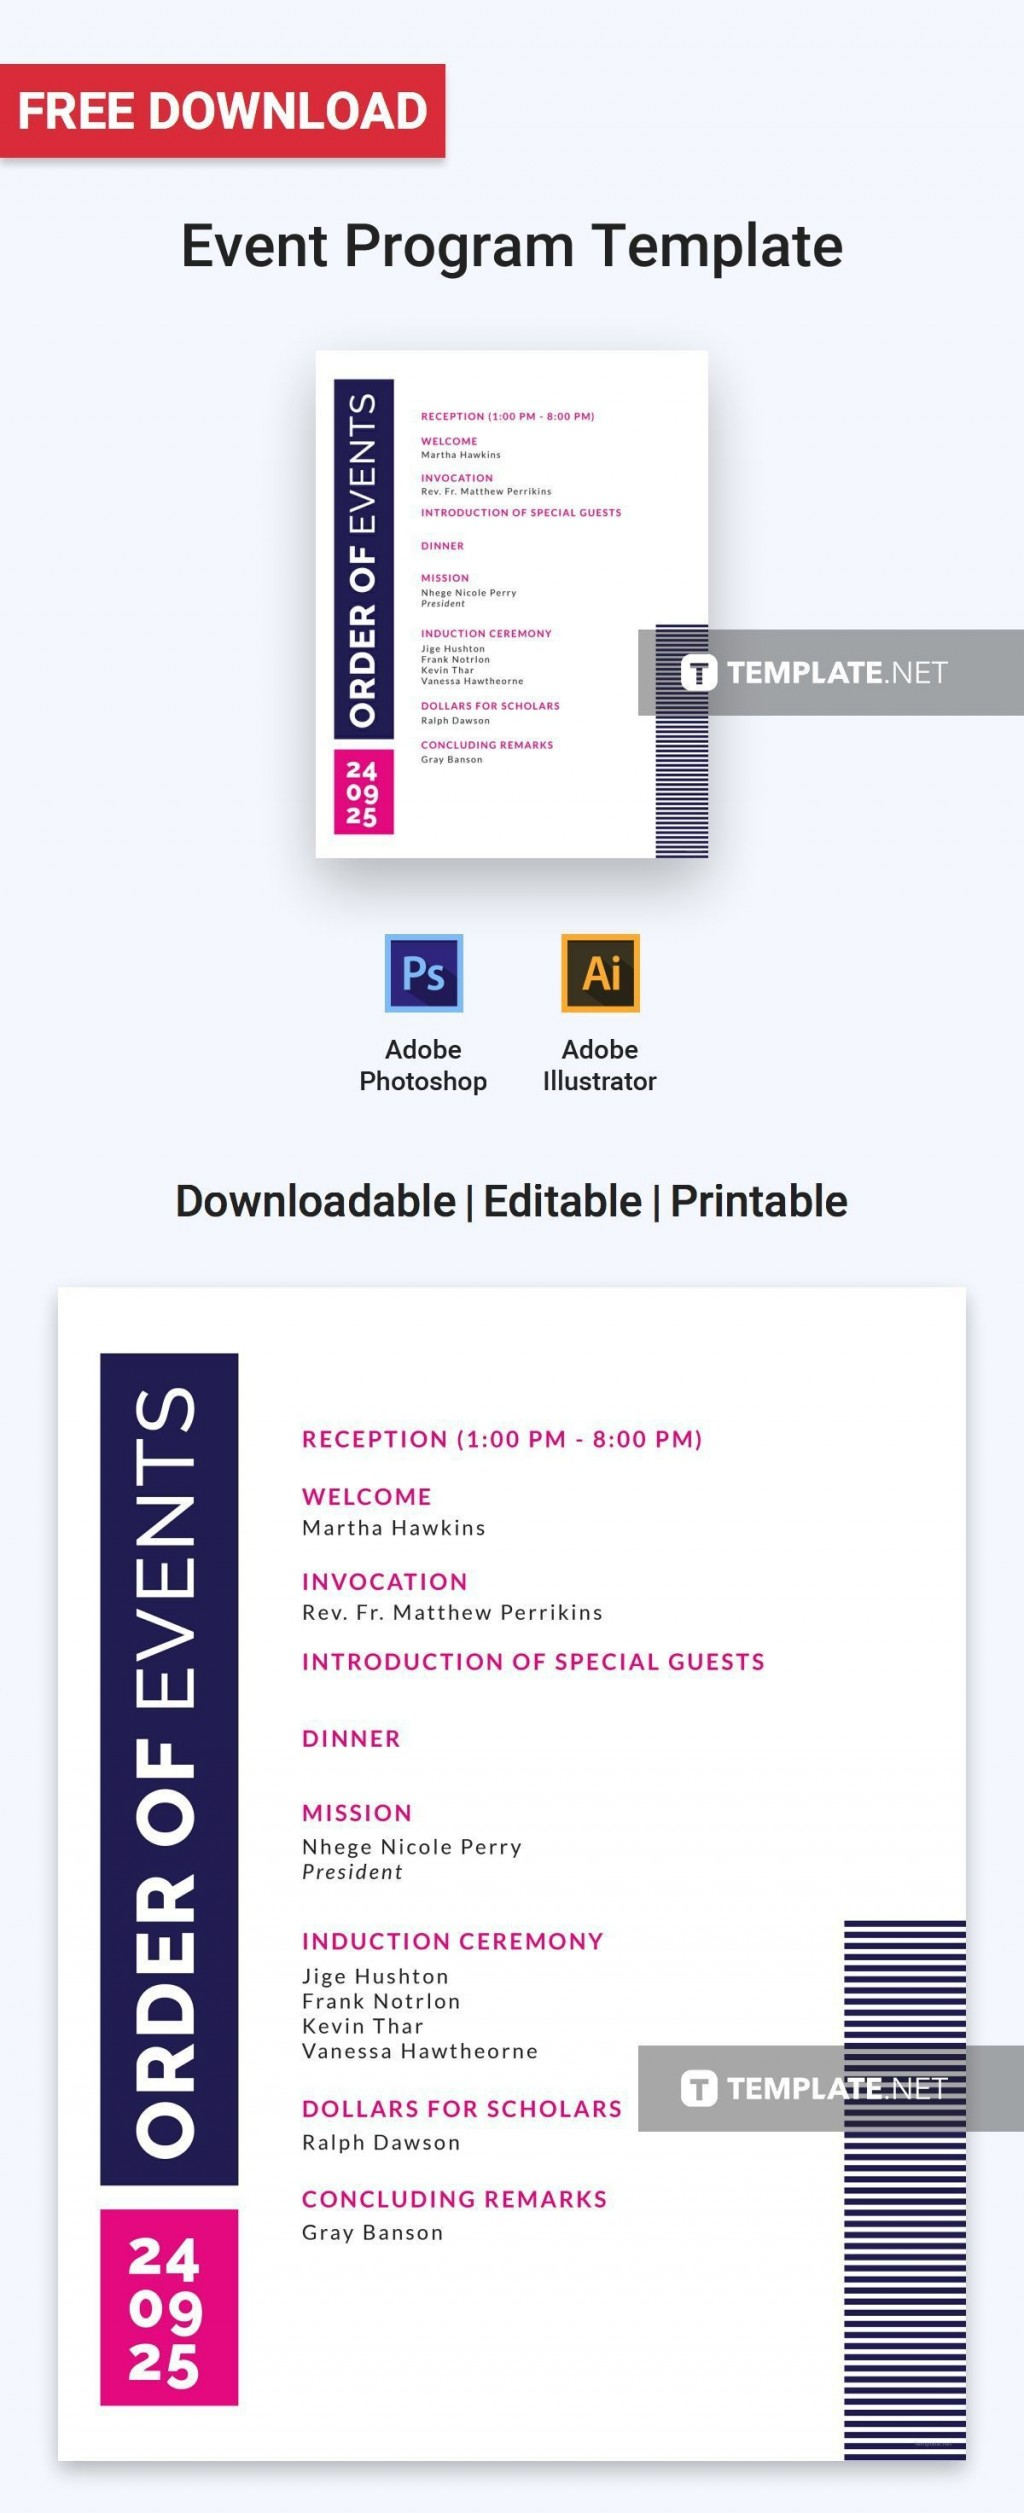 003 Magnificent Free Event Program Template Inspiration  Schedule Psd WordLarge